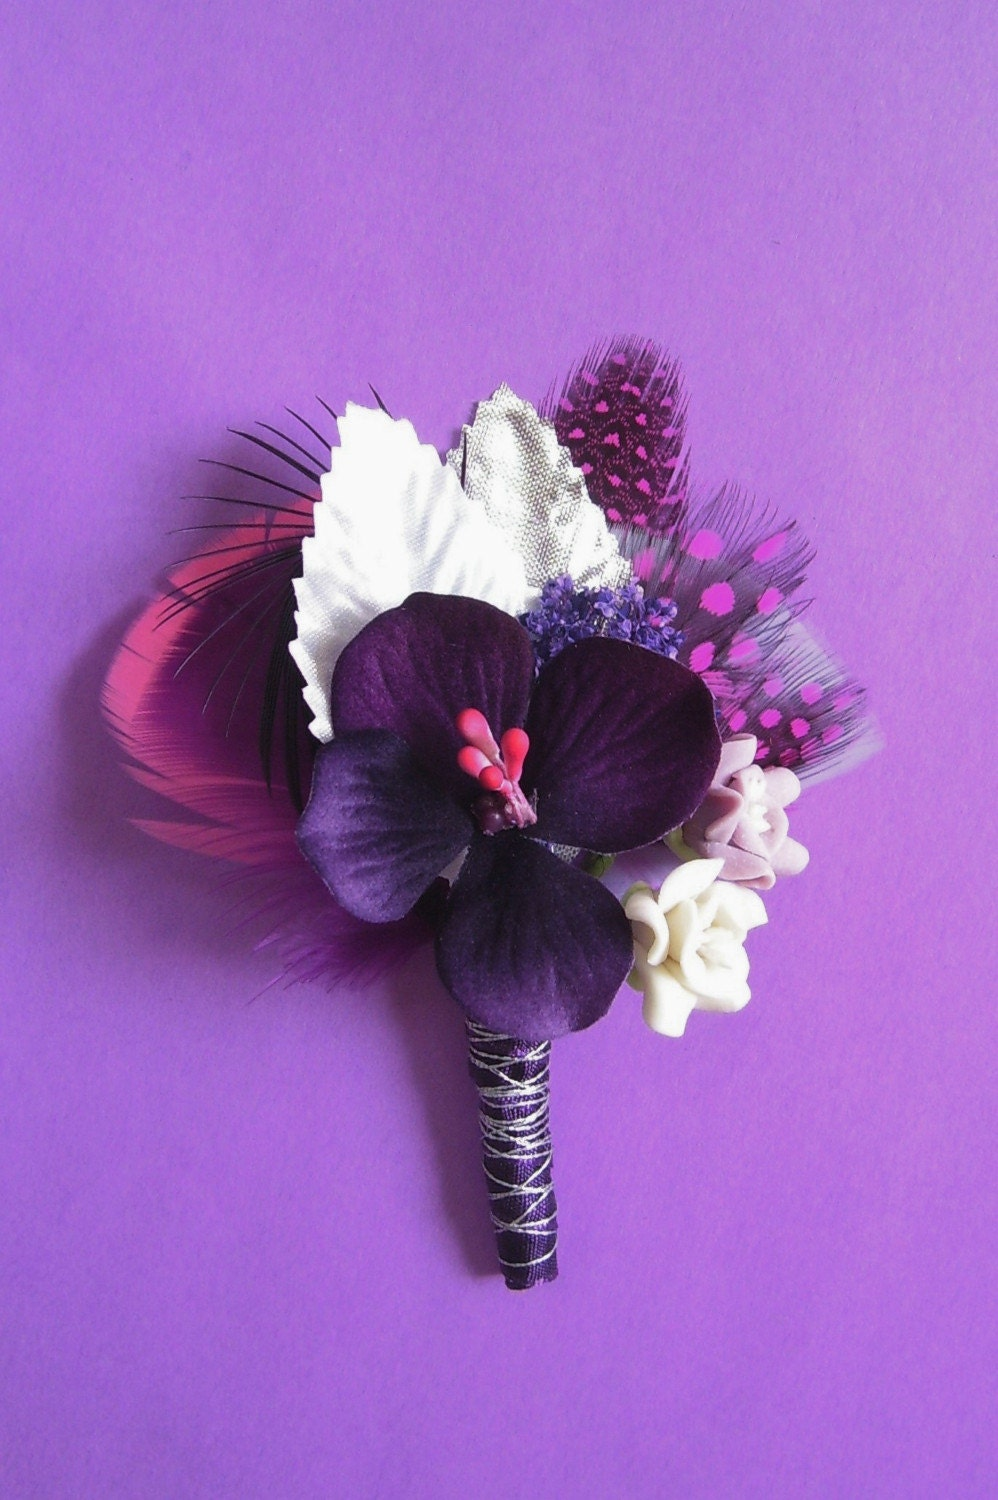 with a dark purple ribbon with silver metallic floss wrapped around